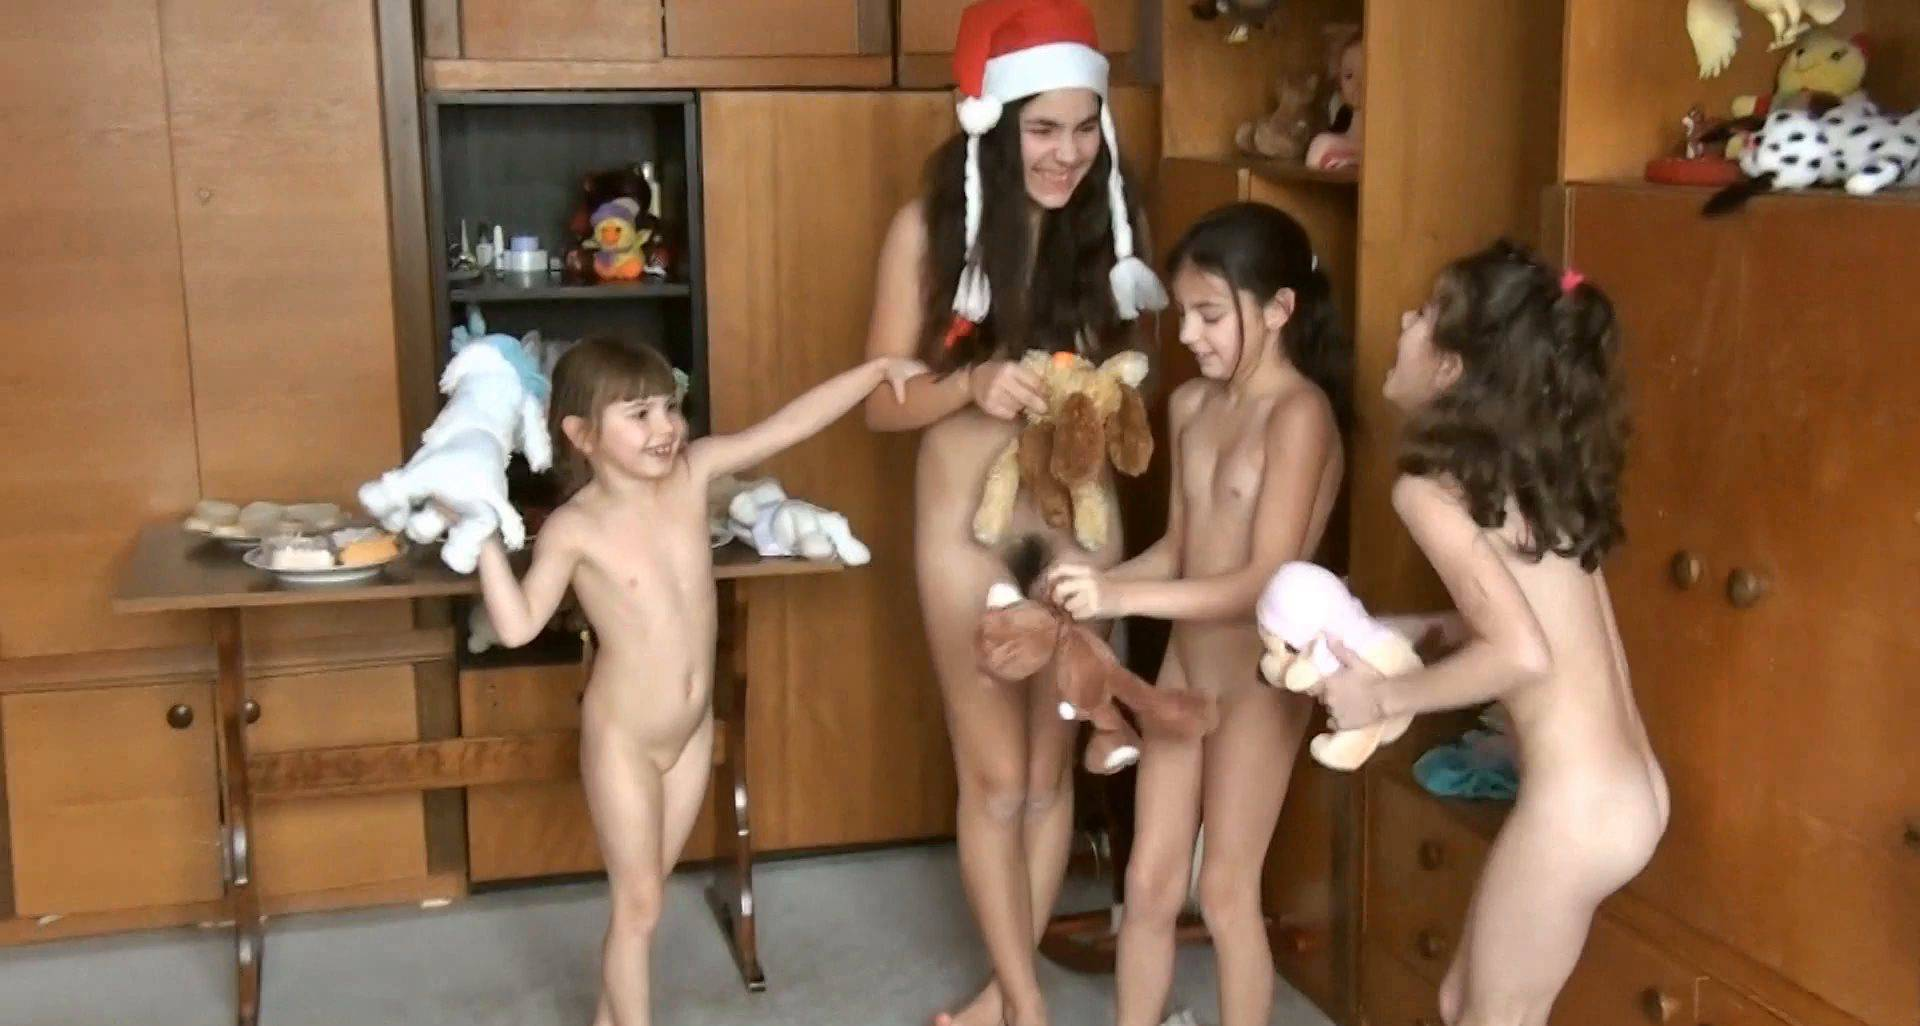 Nudist Videos Family Party of New Year - 1